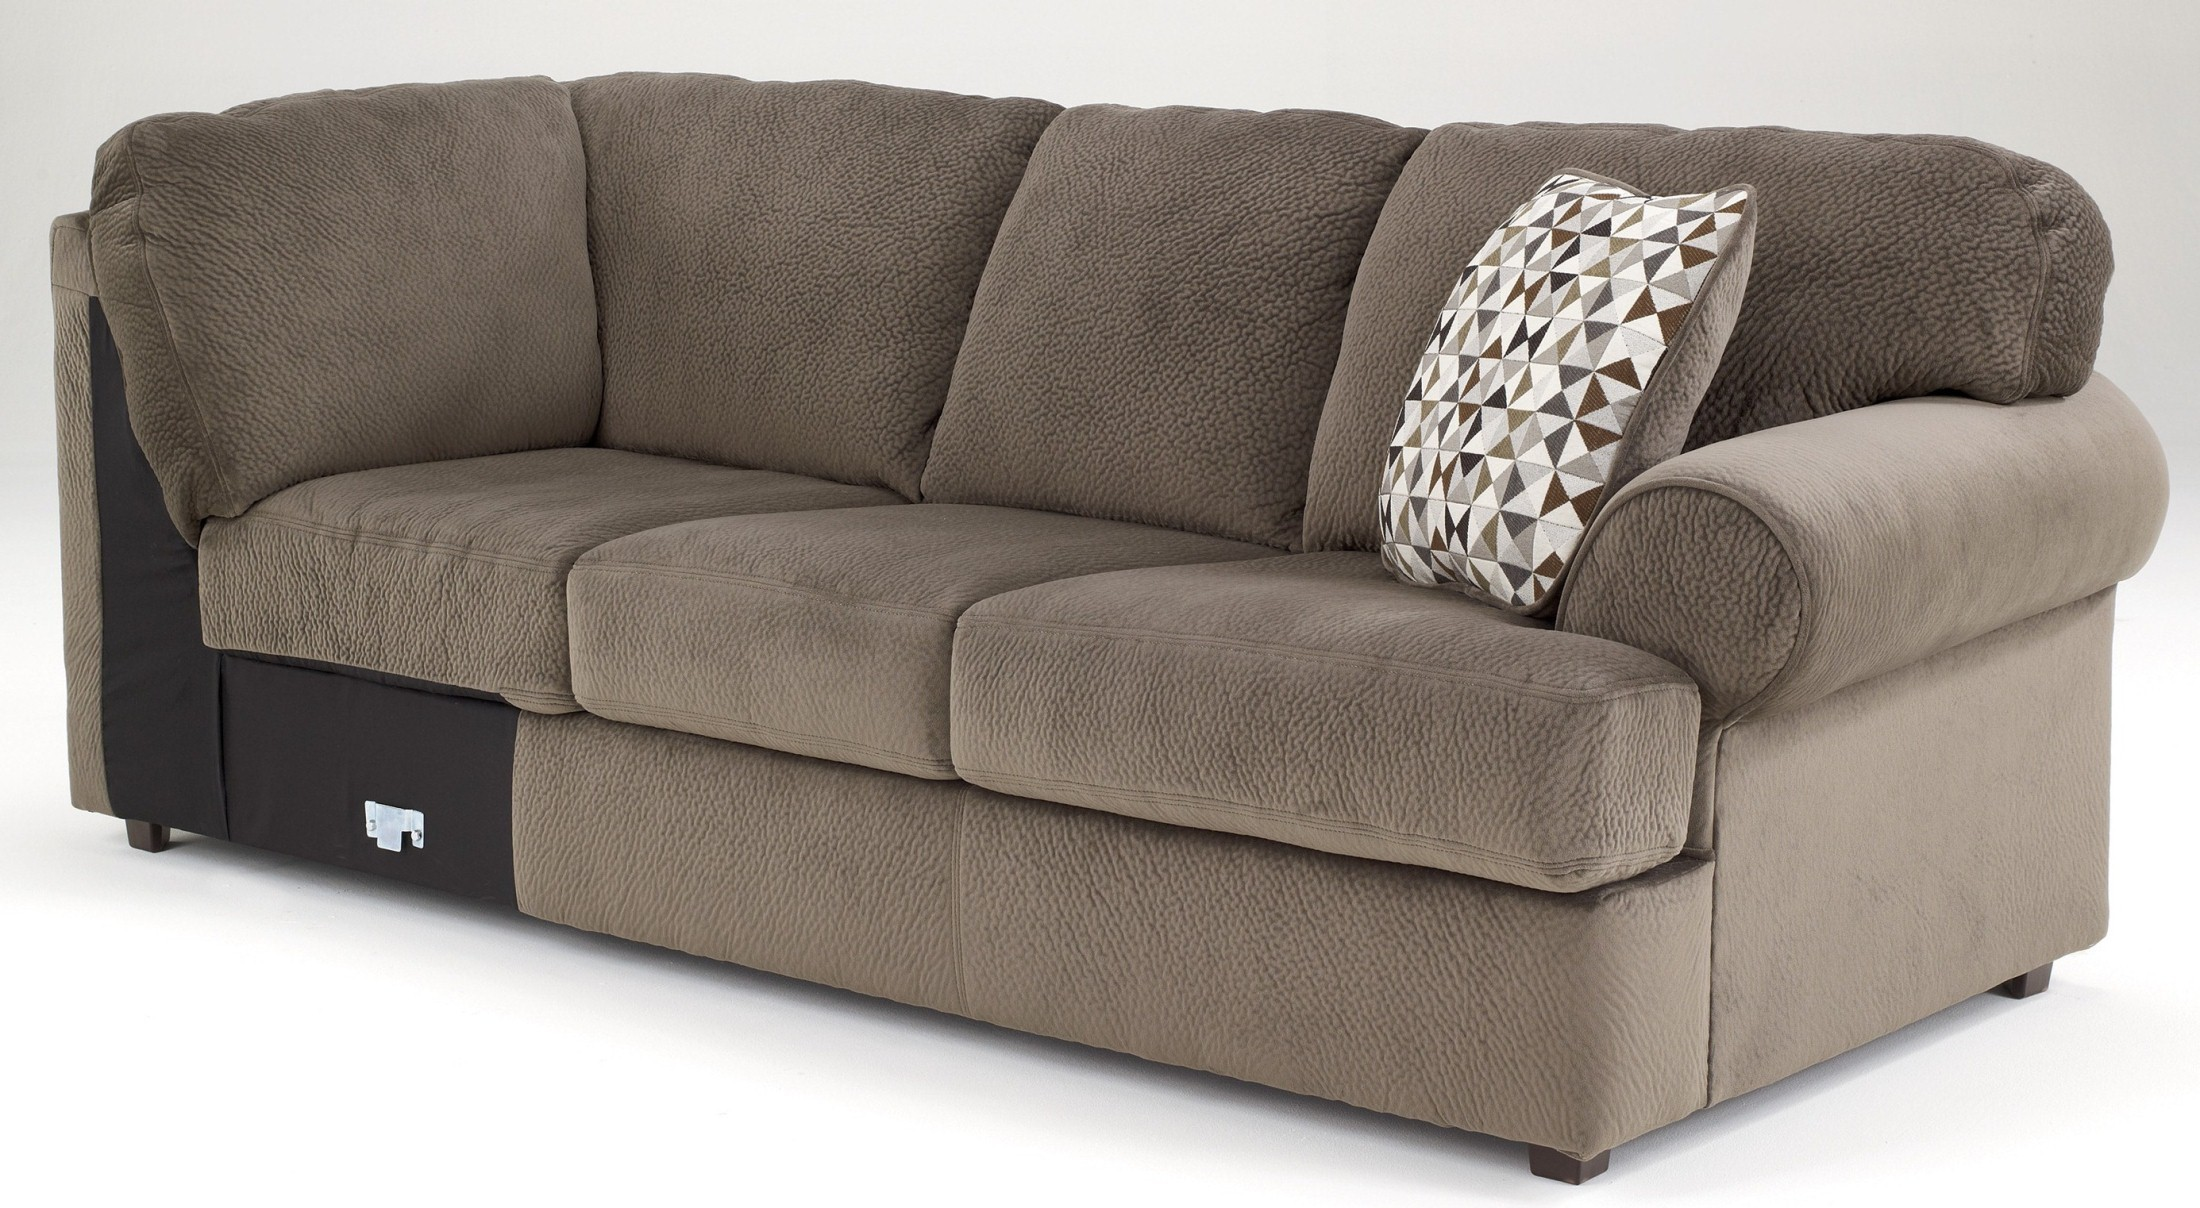 435179 : ashley dune sectional - Sectionals, Sofas & Couches